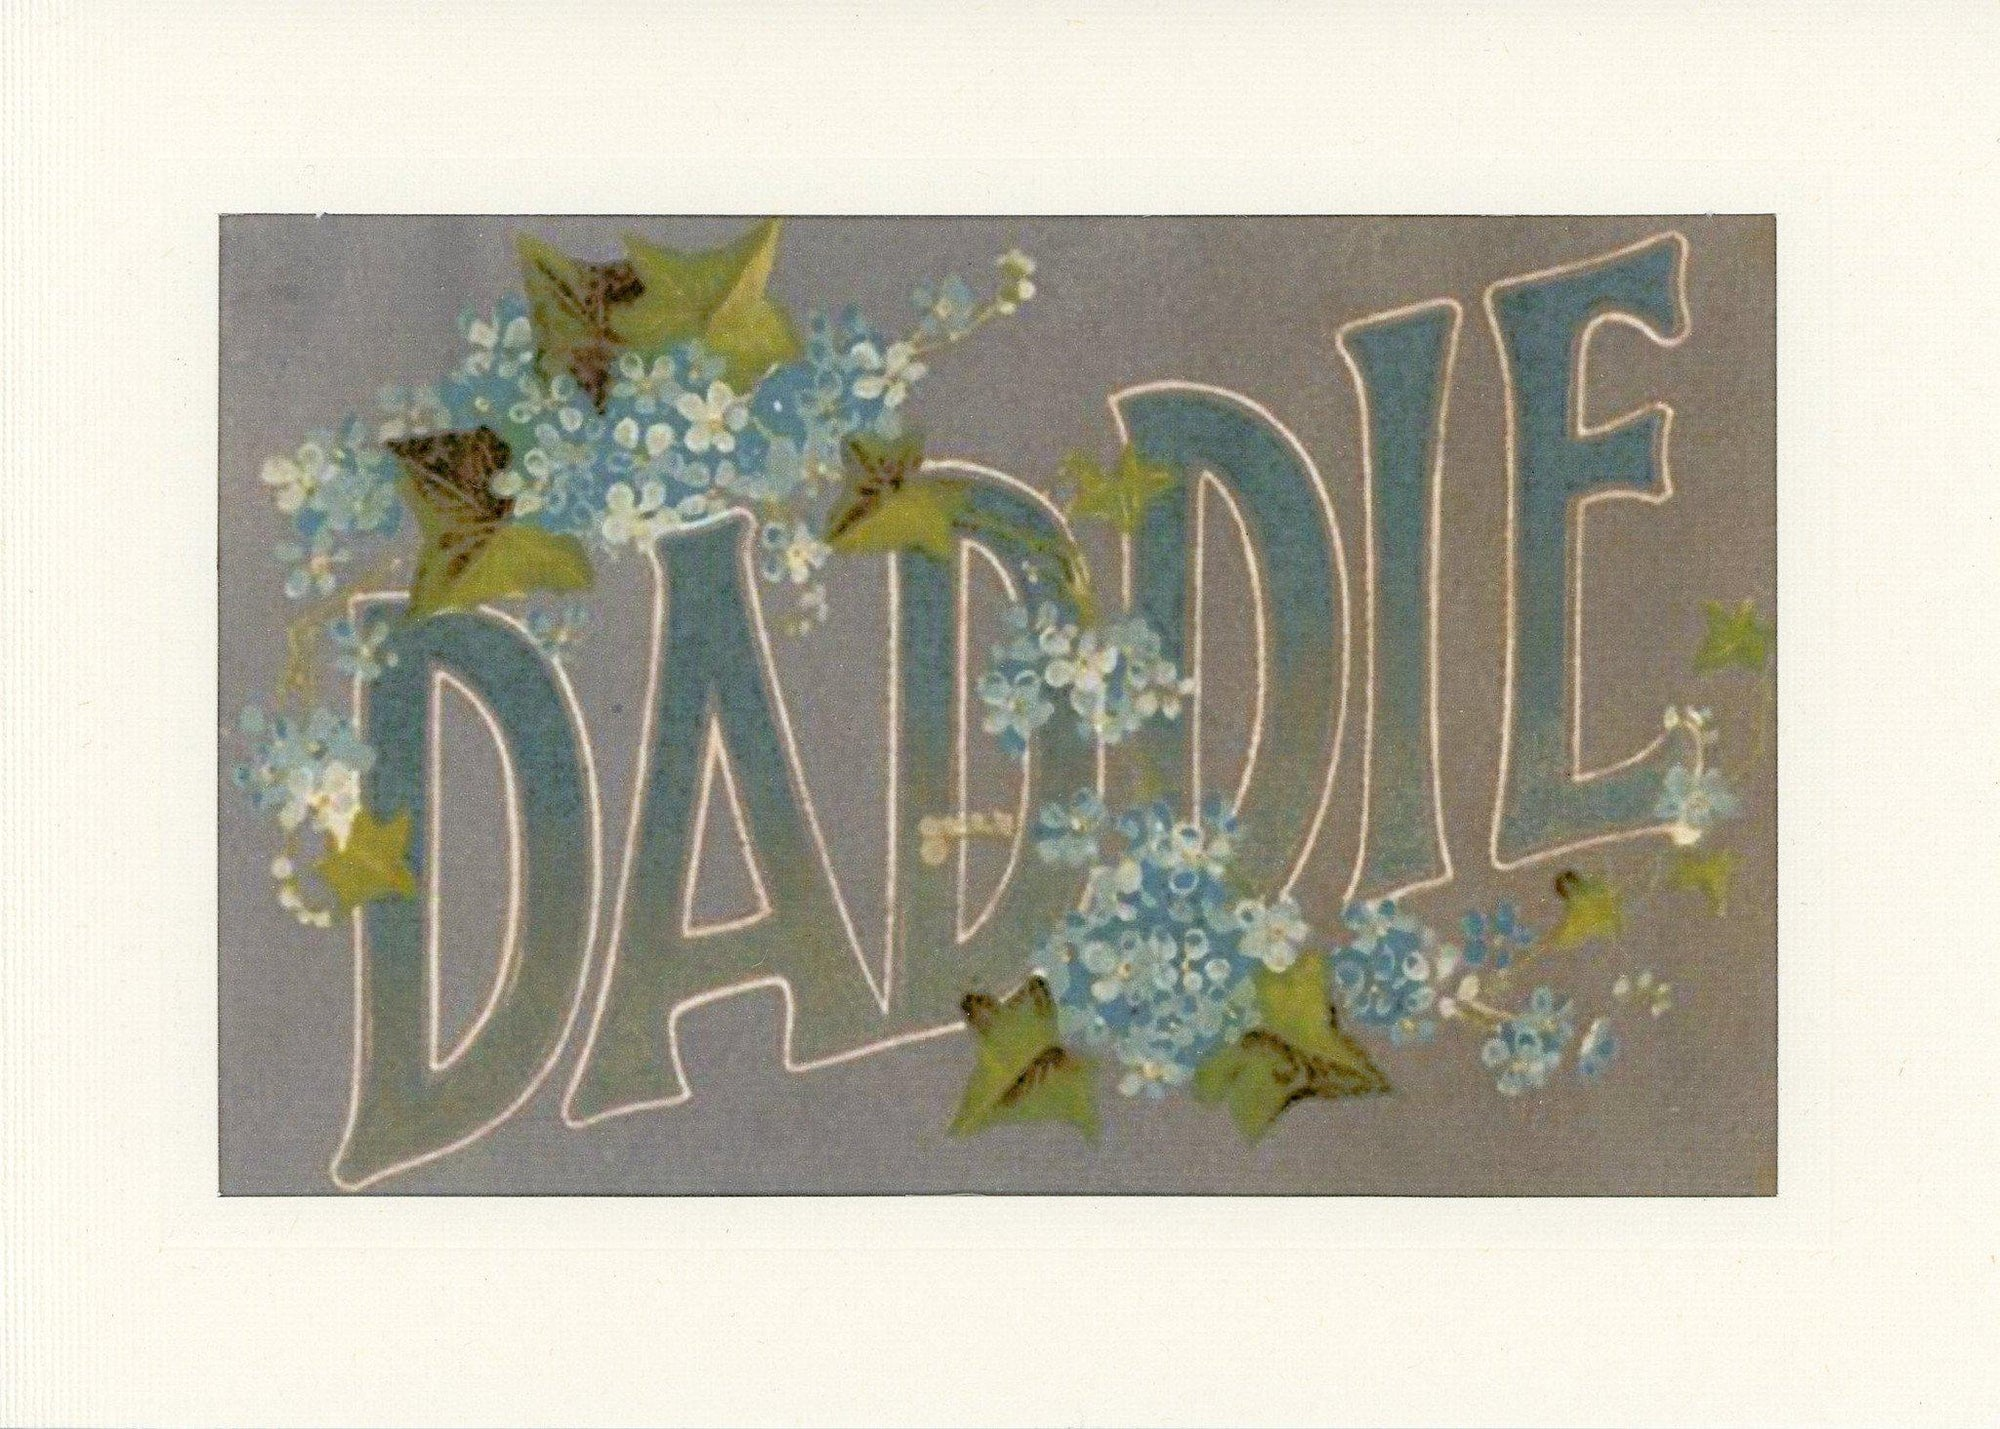 Daddie-Greetings from the Past-Plymouth Cards